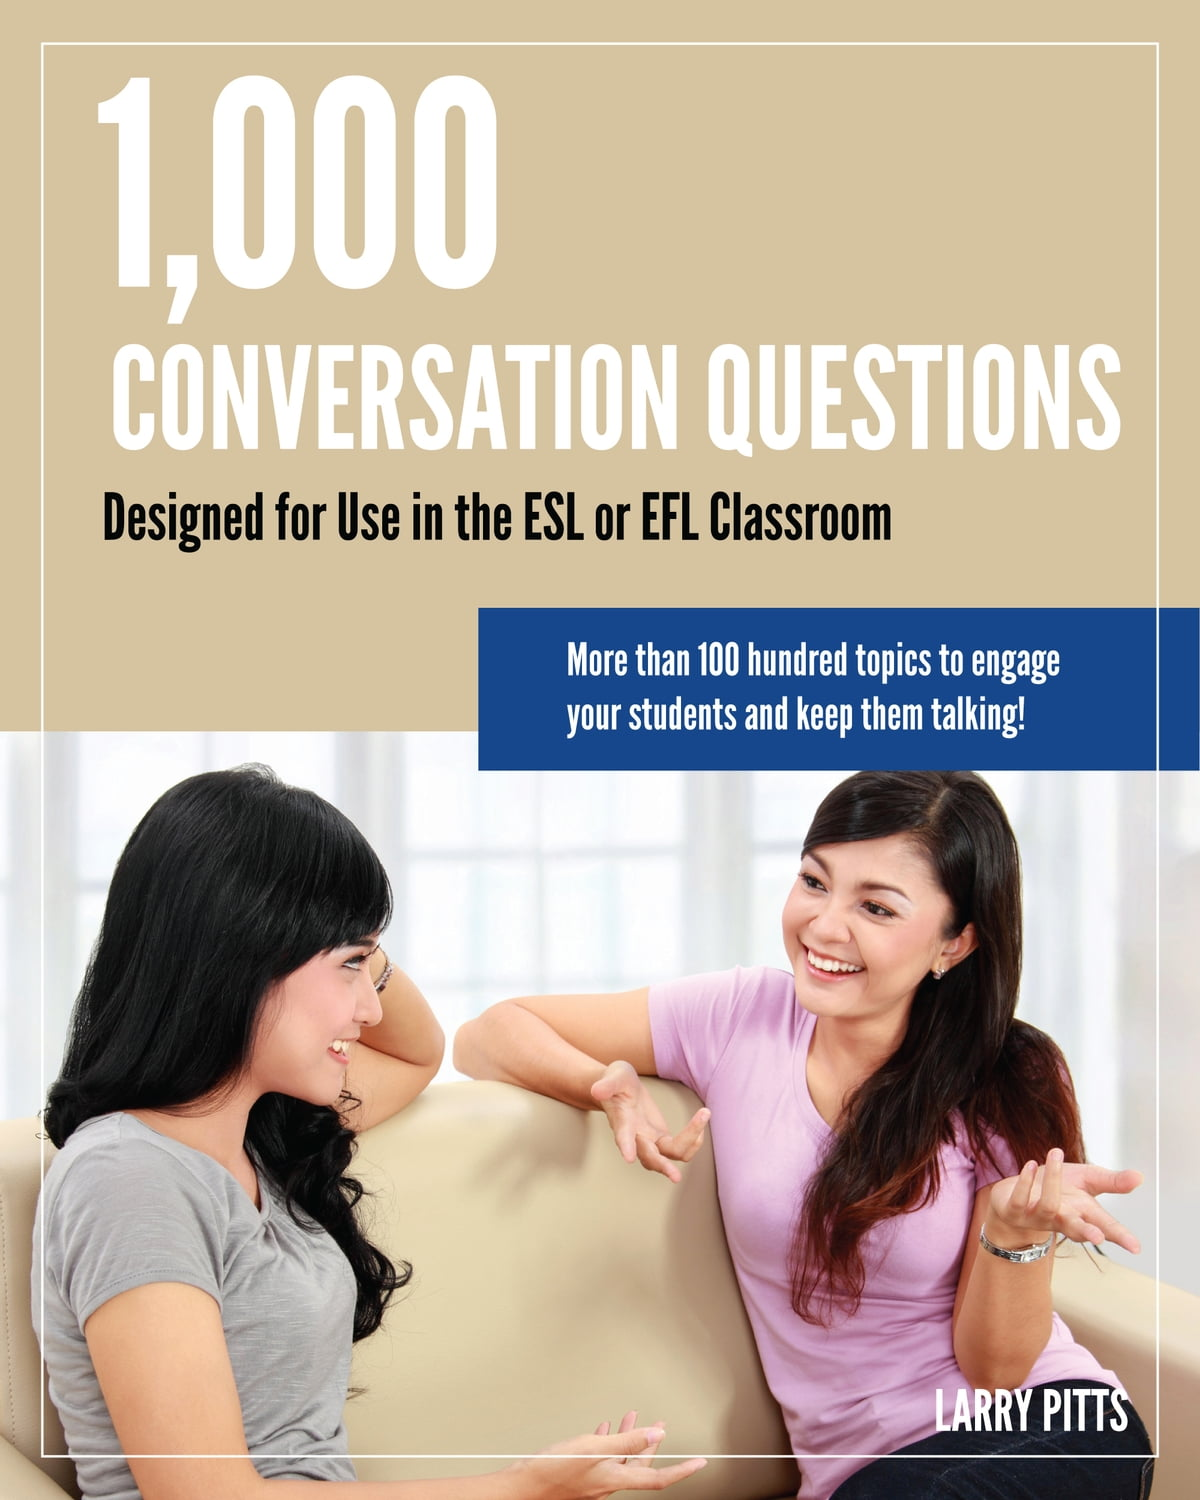 1,000 Conversation Questions: Designed for Use in the ESL or EFL Classroom  eBook by Larry Pitts - 9781942116004 | Rakuten Kobo